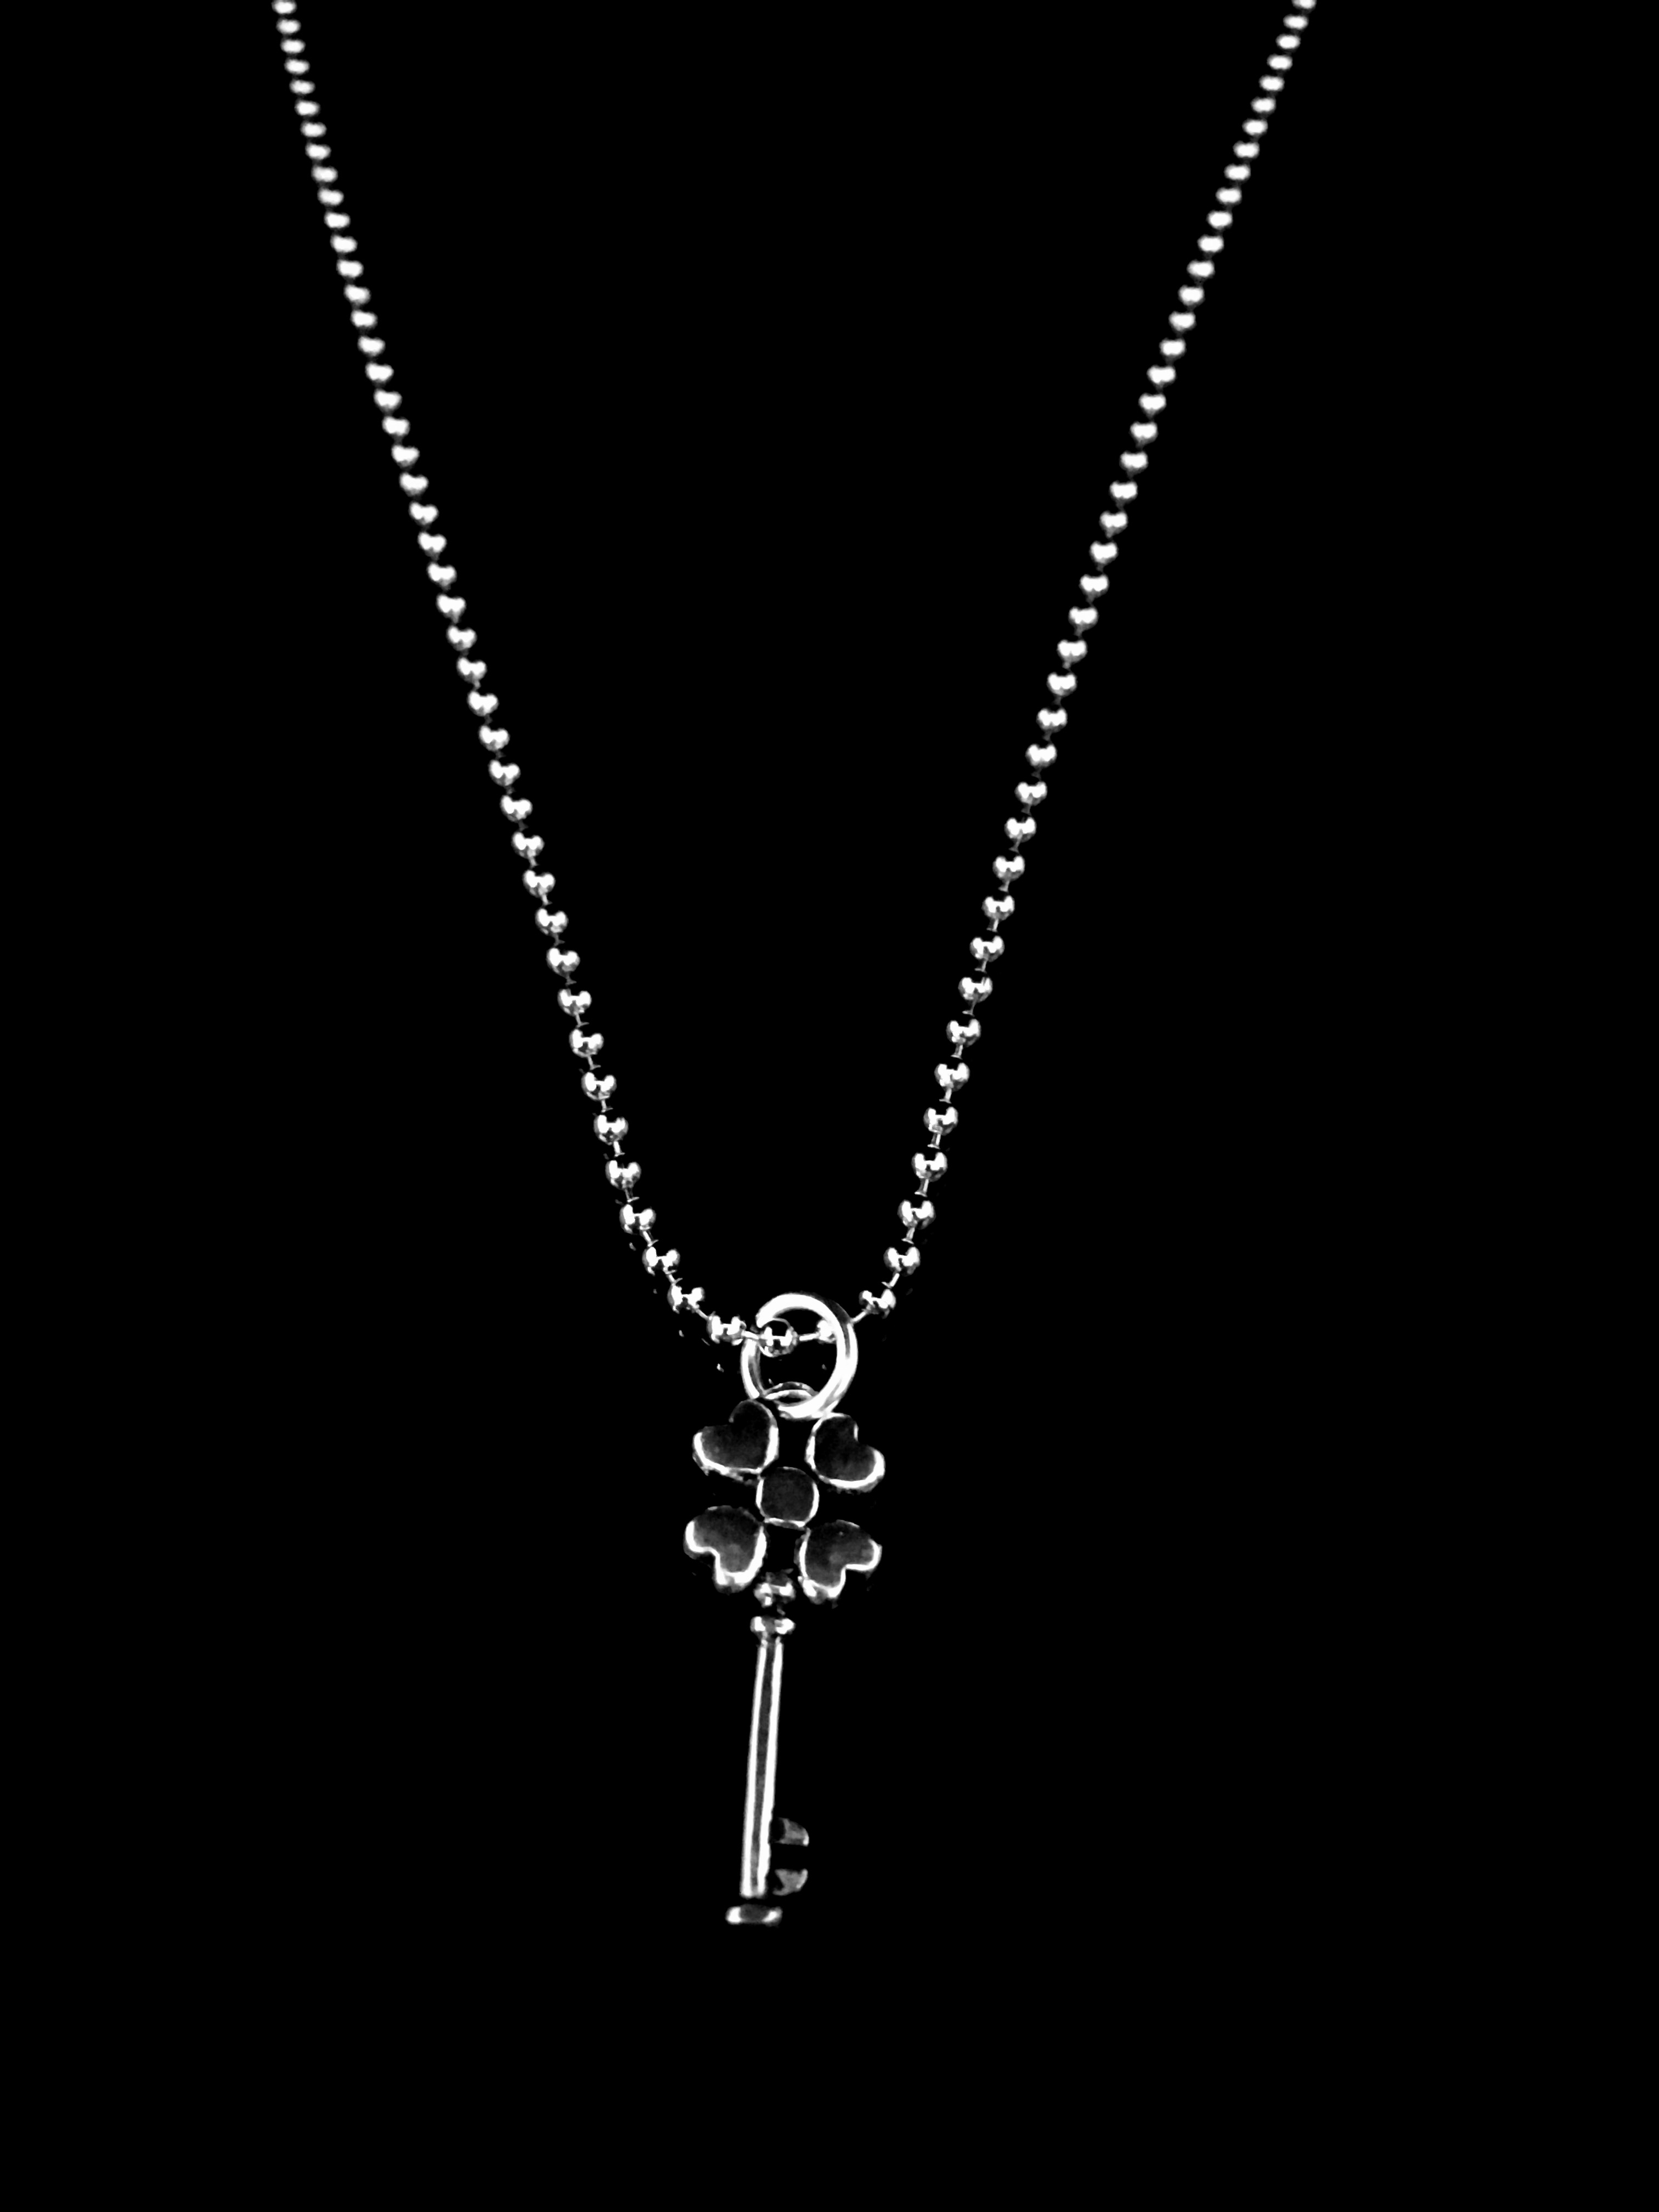 giving necklace in the keys view fearless classic collections key pendant wishlist products antiquegold